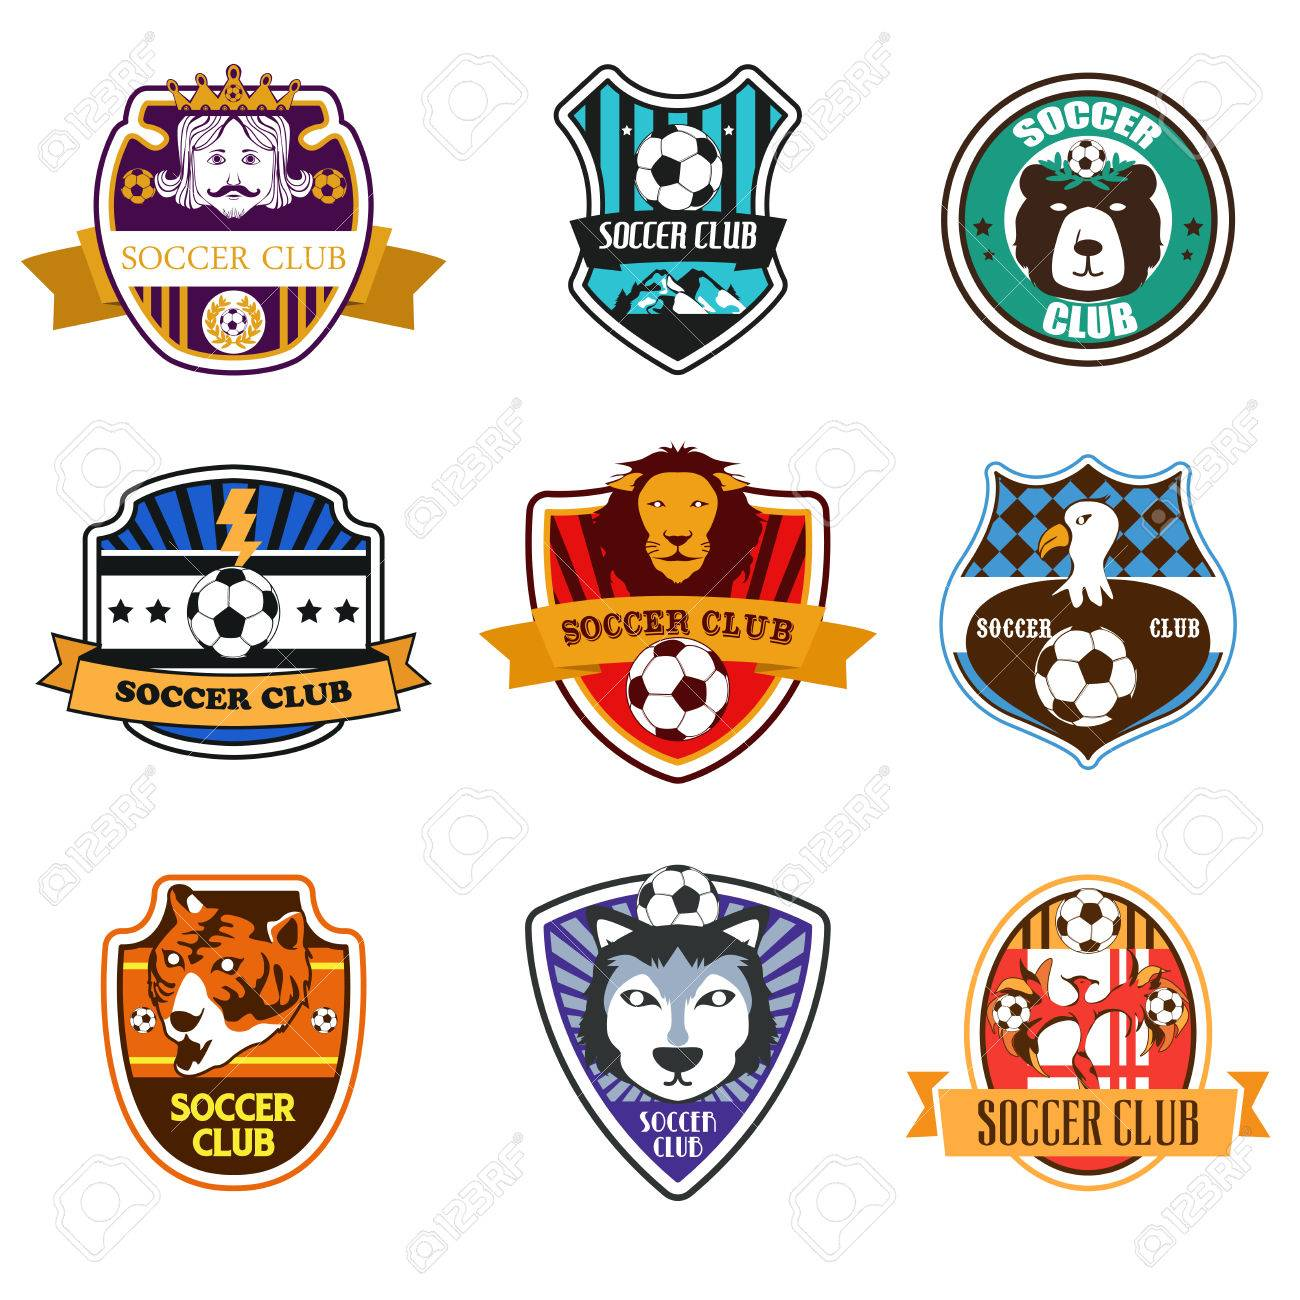 Football team logo stock photos royalty free business images a vector illustration of soccer club logos biocorpaavc Choice Image